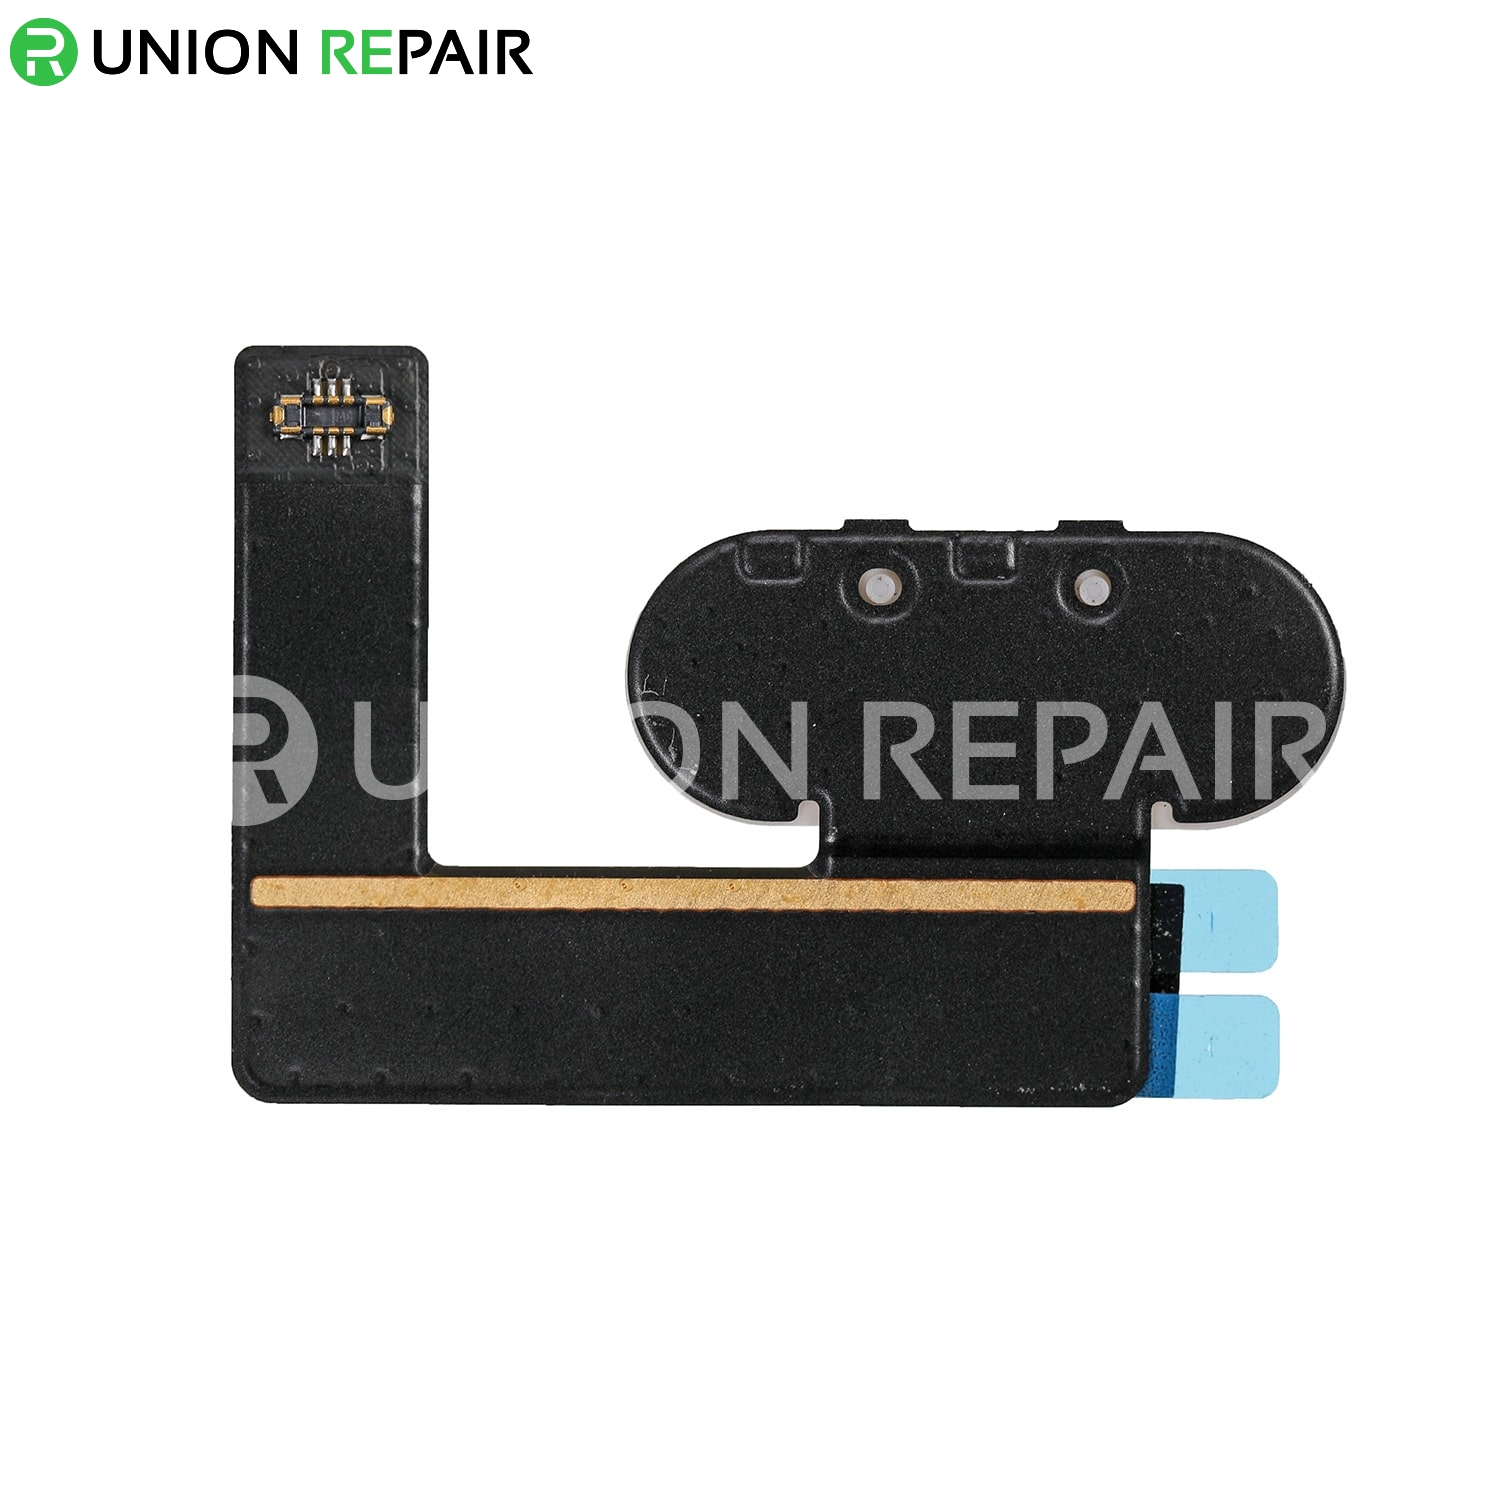 "Replacement for iPad Pro 11"" Smart Keyboard Flex Cable - Silver"